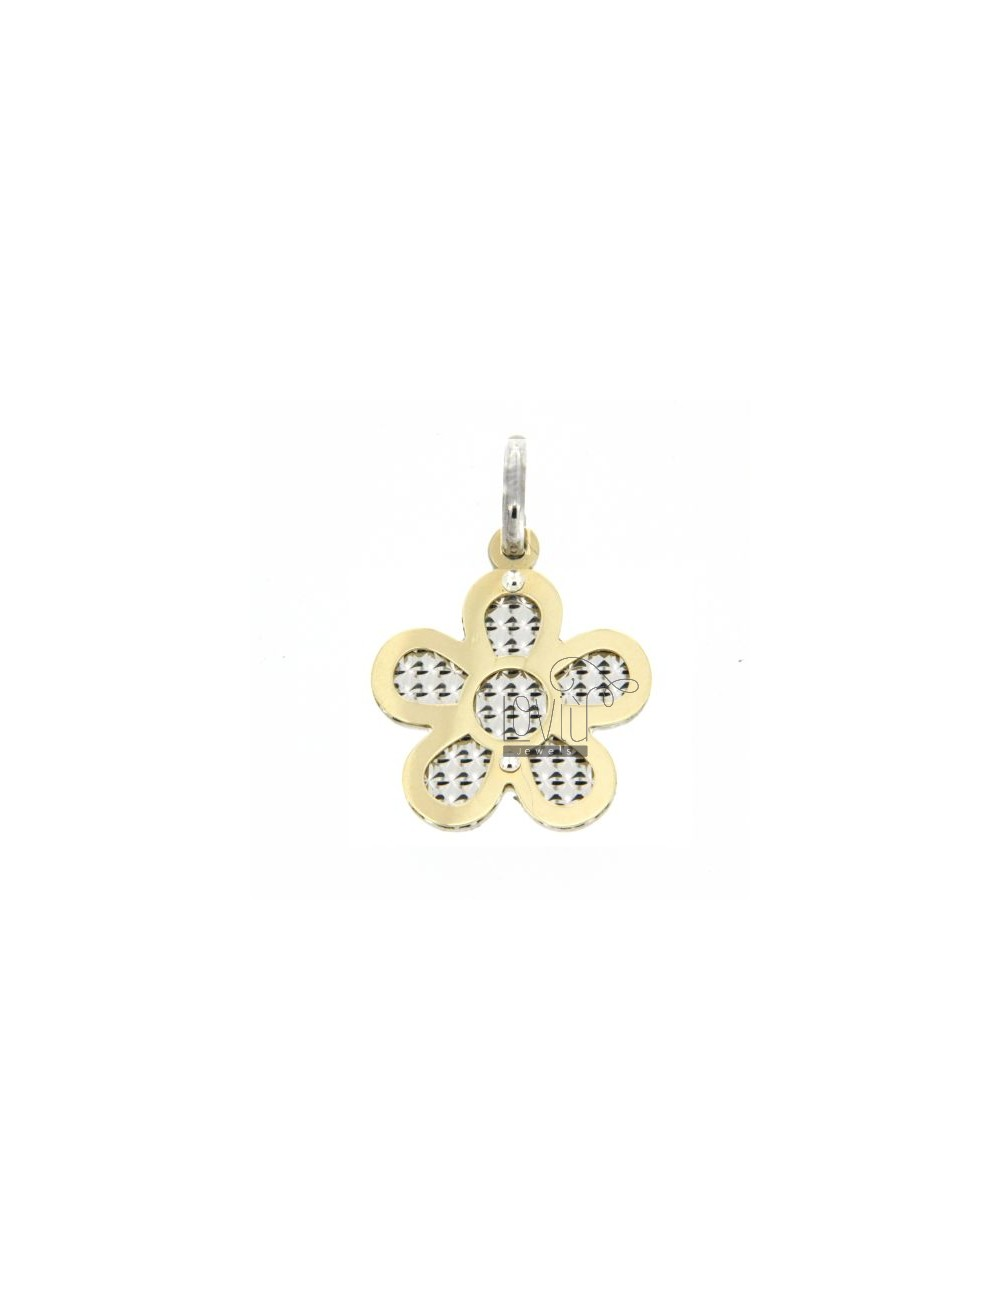 FLOWER PENDANT GOLD PLATED SILVER DIAMOND WITH INTERNAL 925